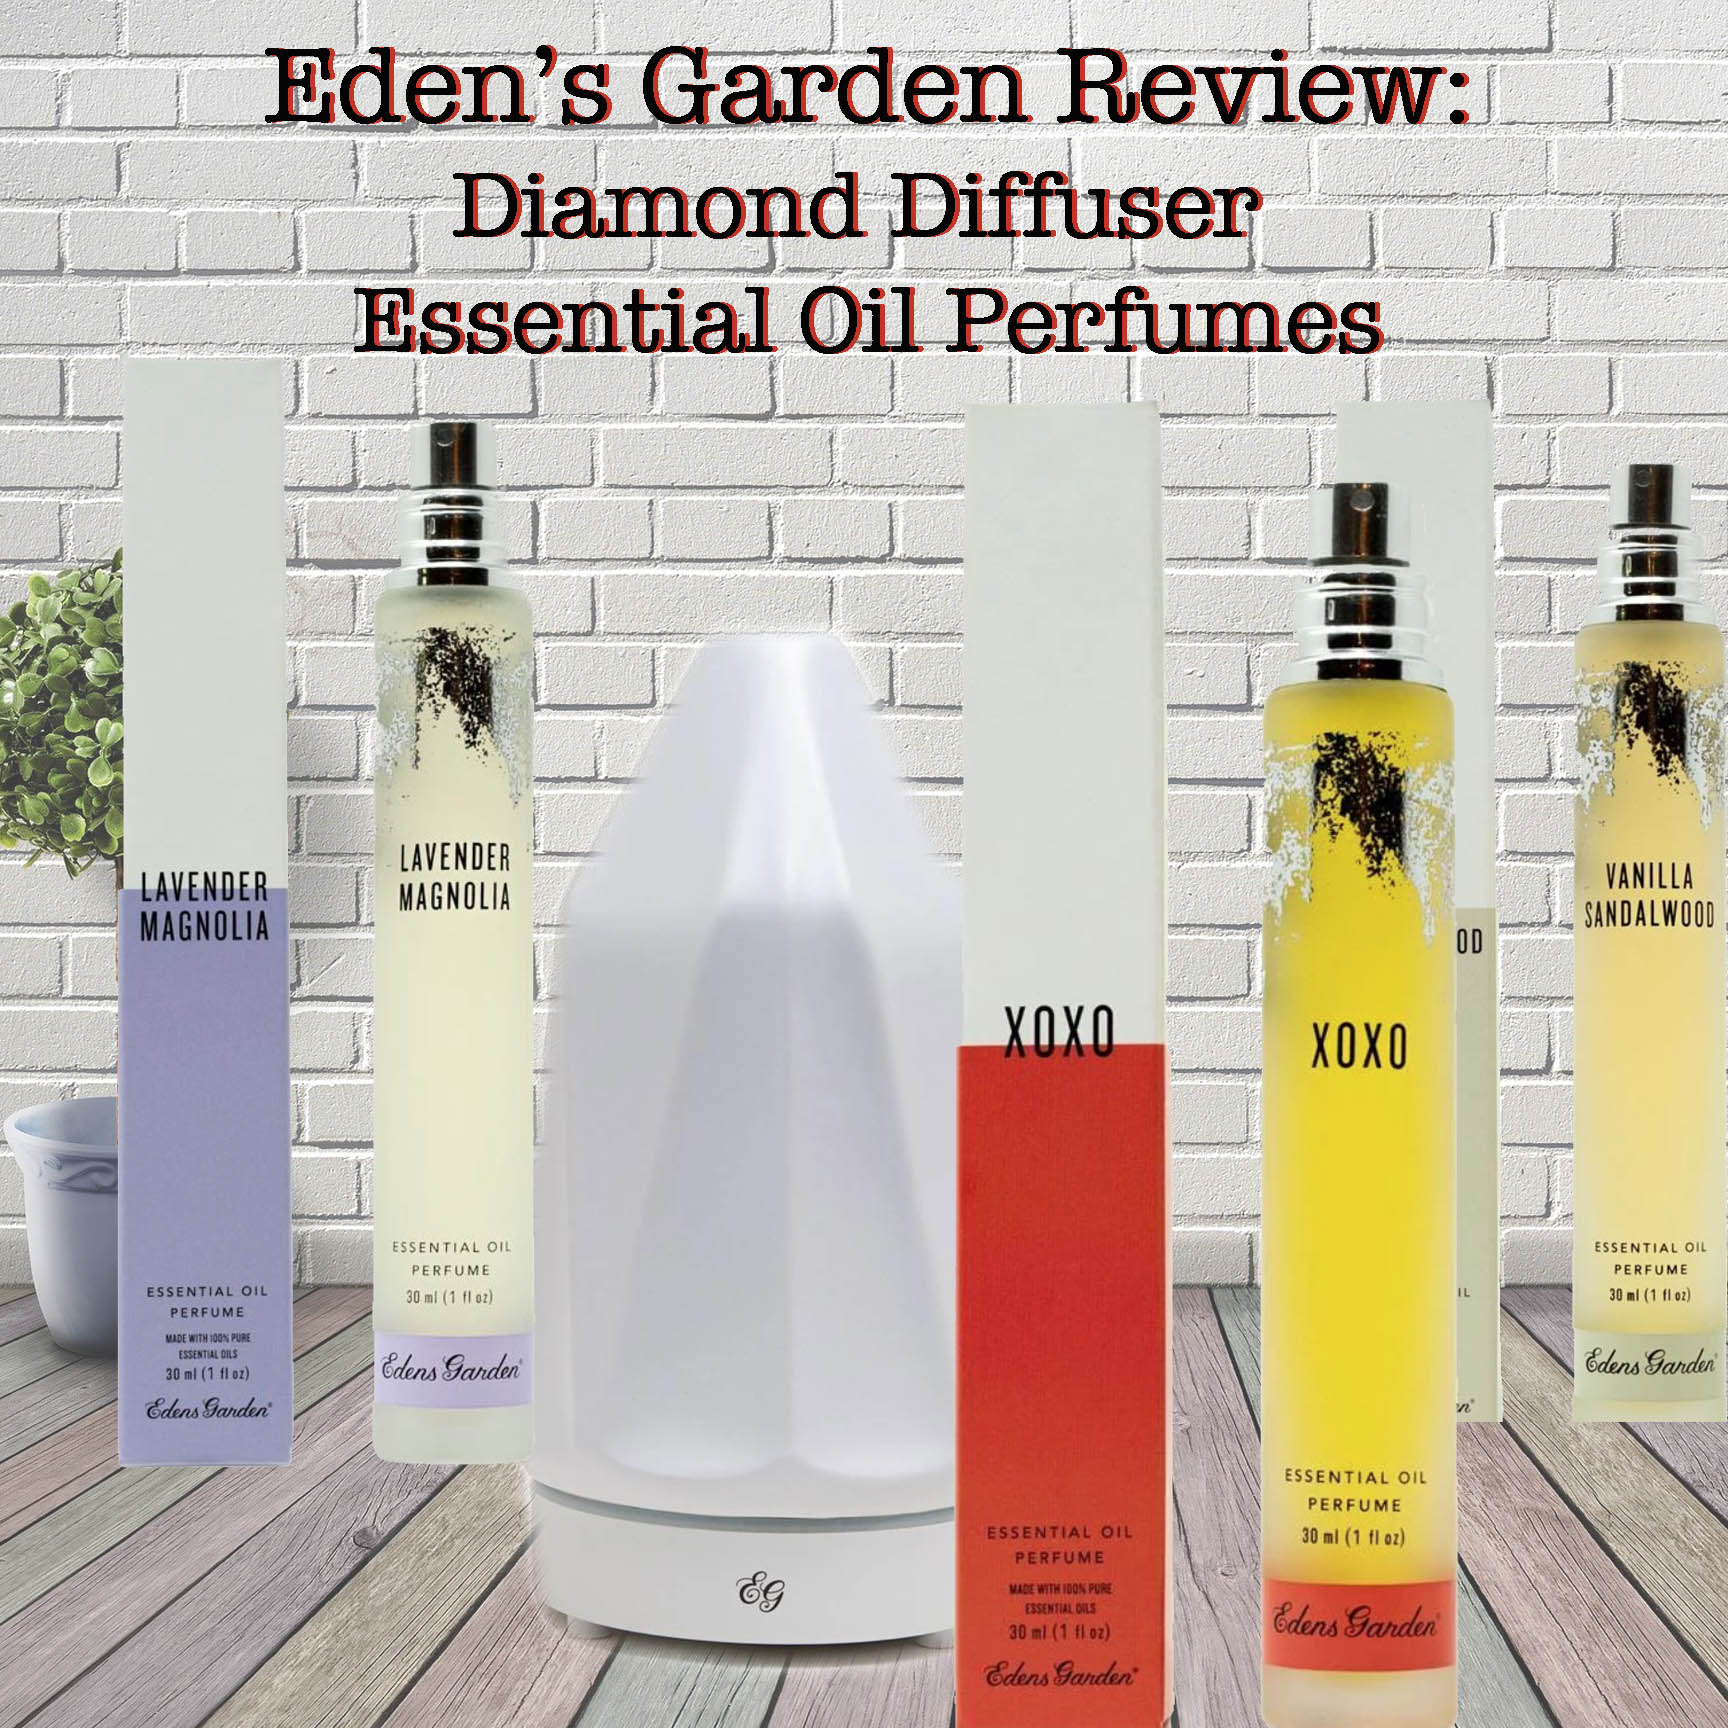 Eden's Garden Essential Oil Perfumes and Ceramic Diamond Diffuser Review